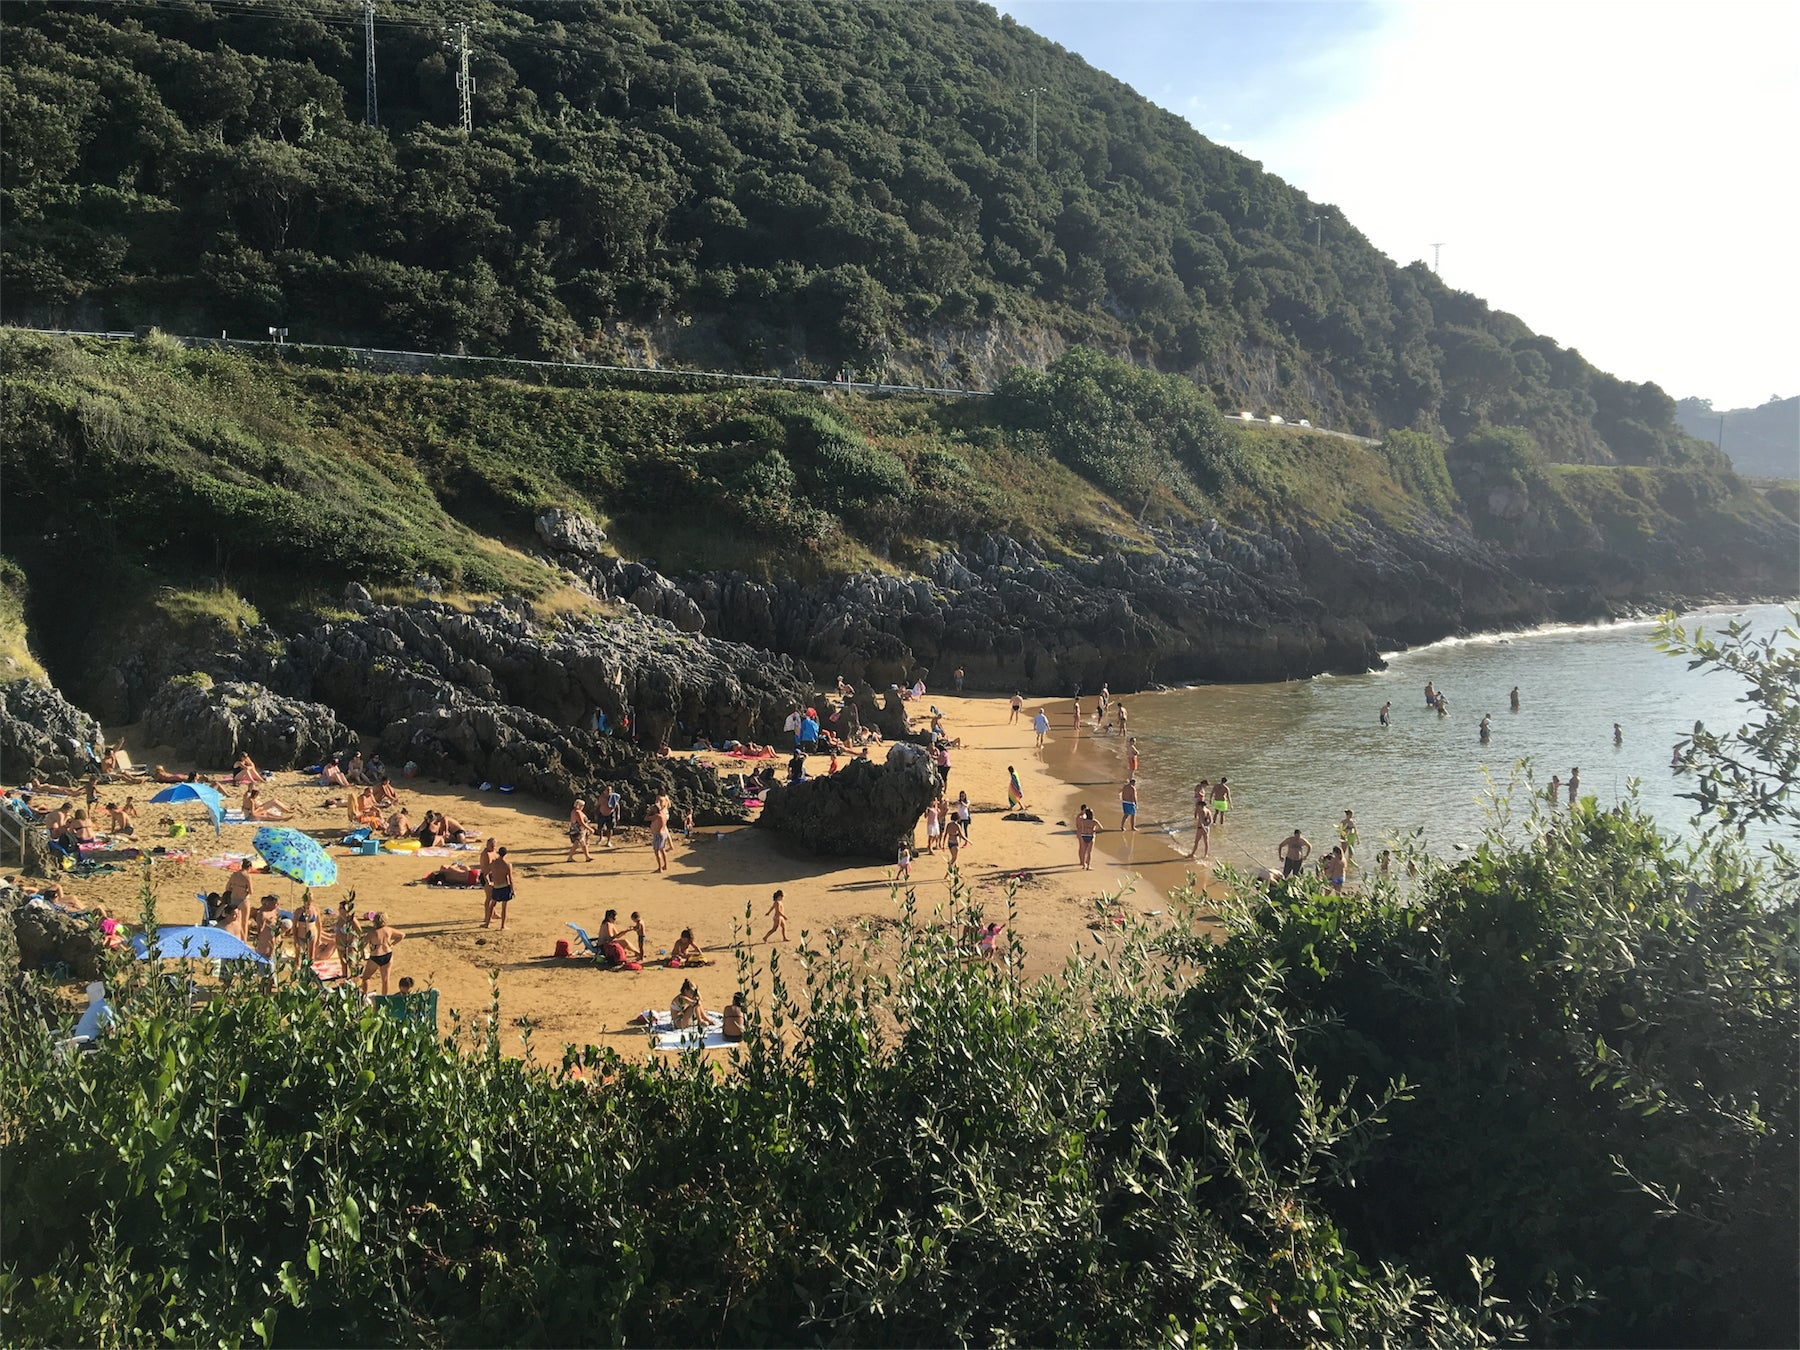 Playa Arenillas